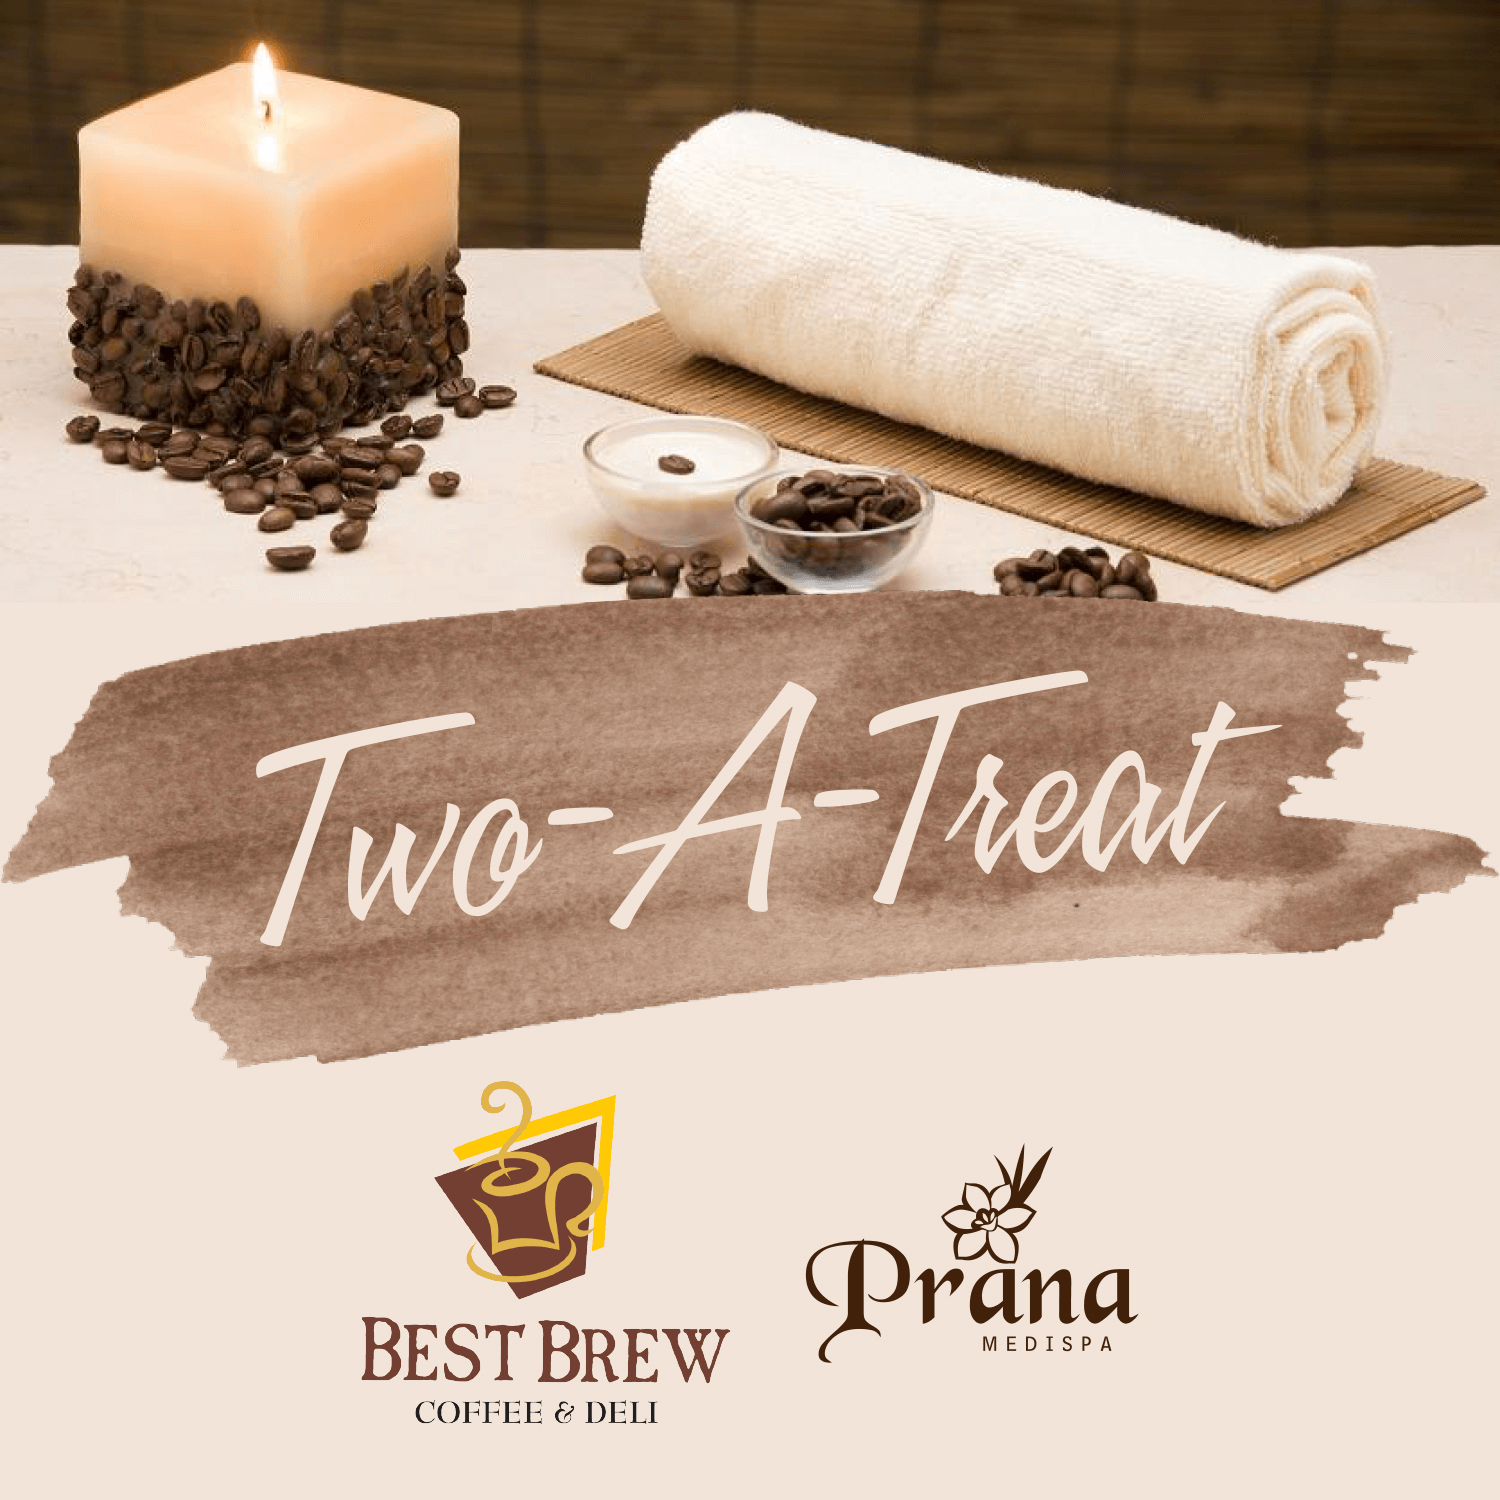 Prana Medispa x Best Brew Cafe October Promo: Two-a-Treat Promo Packages 2018